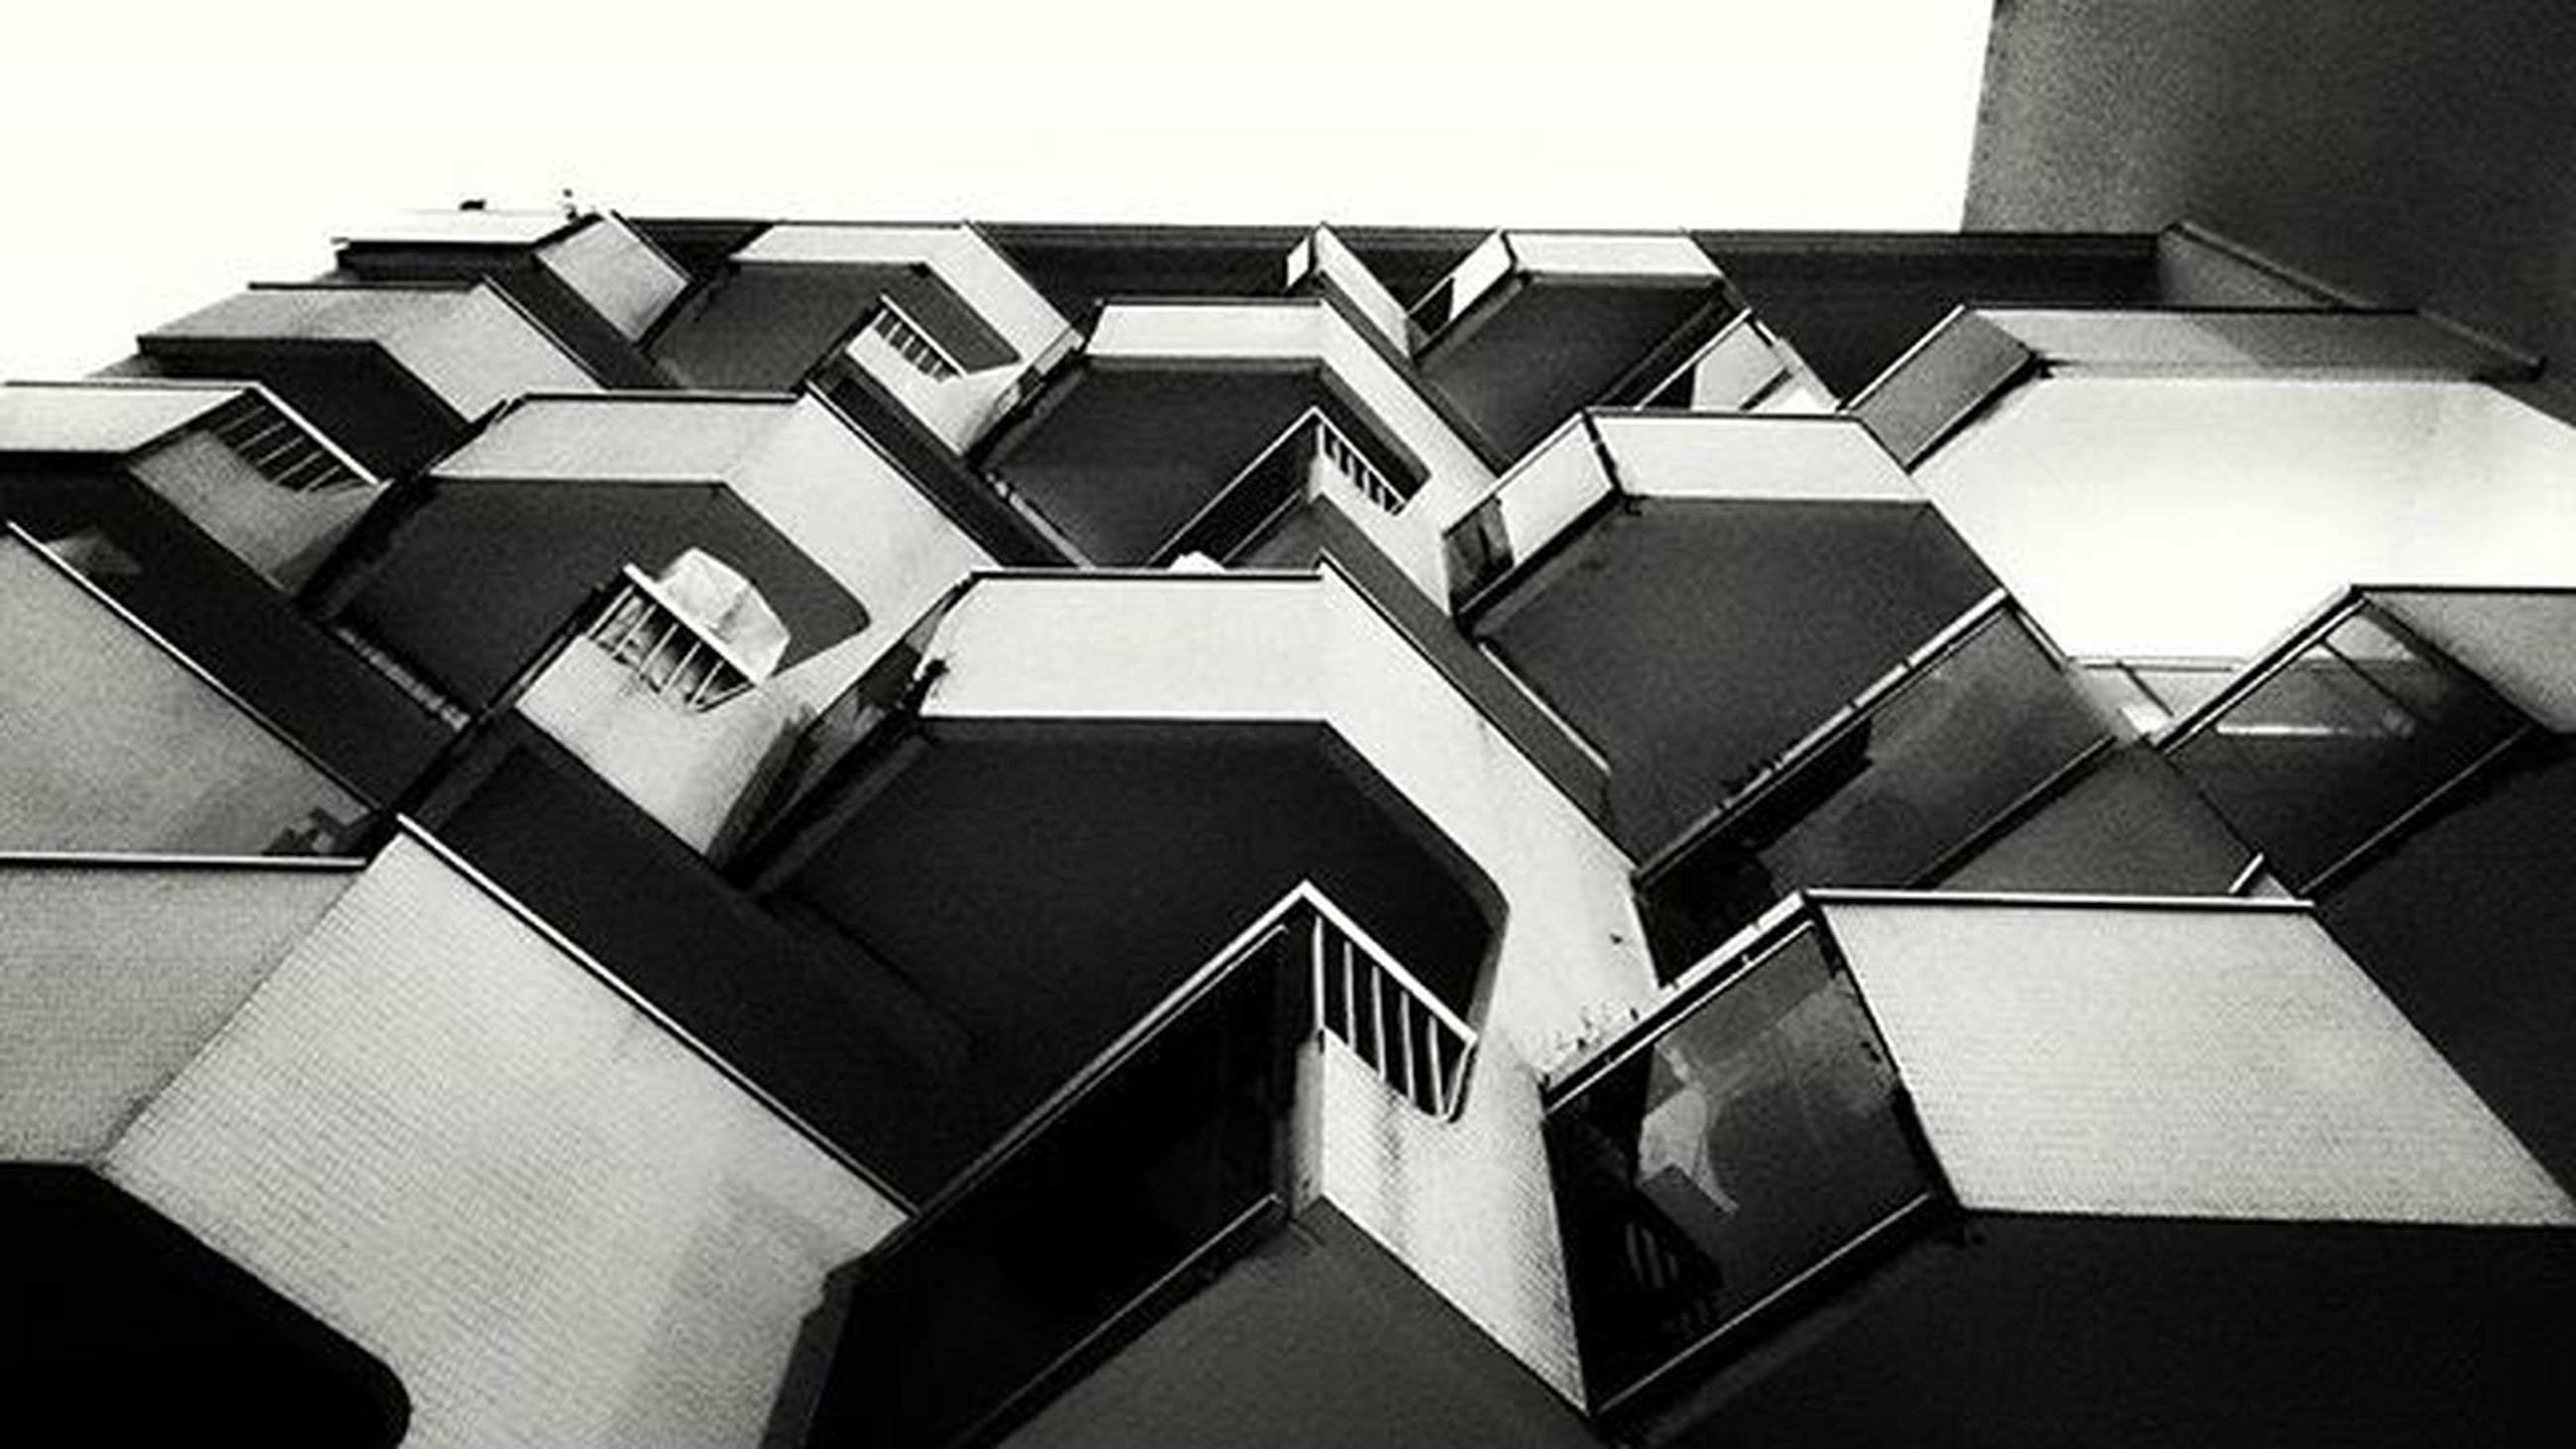 architecture, built structure, low angle view, building exterior, building, modern, office building, city, clear sky, window, pattern, repetition, architectural feature, directly below, tall - high, no people, day, sky, geometric shape, design